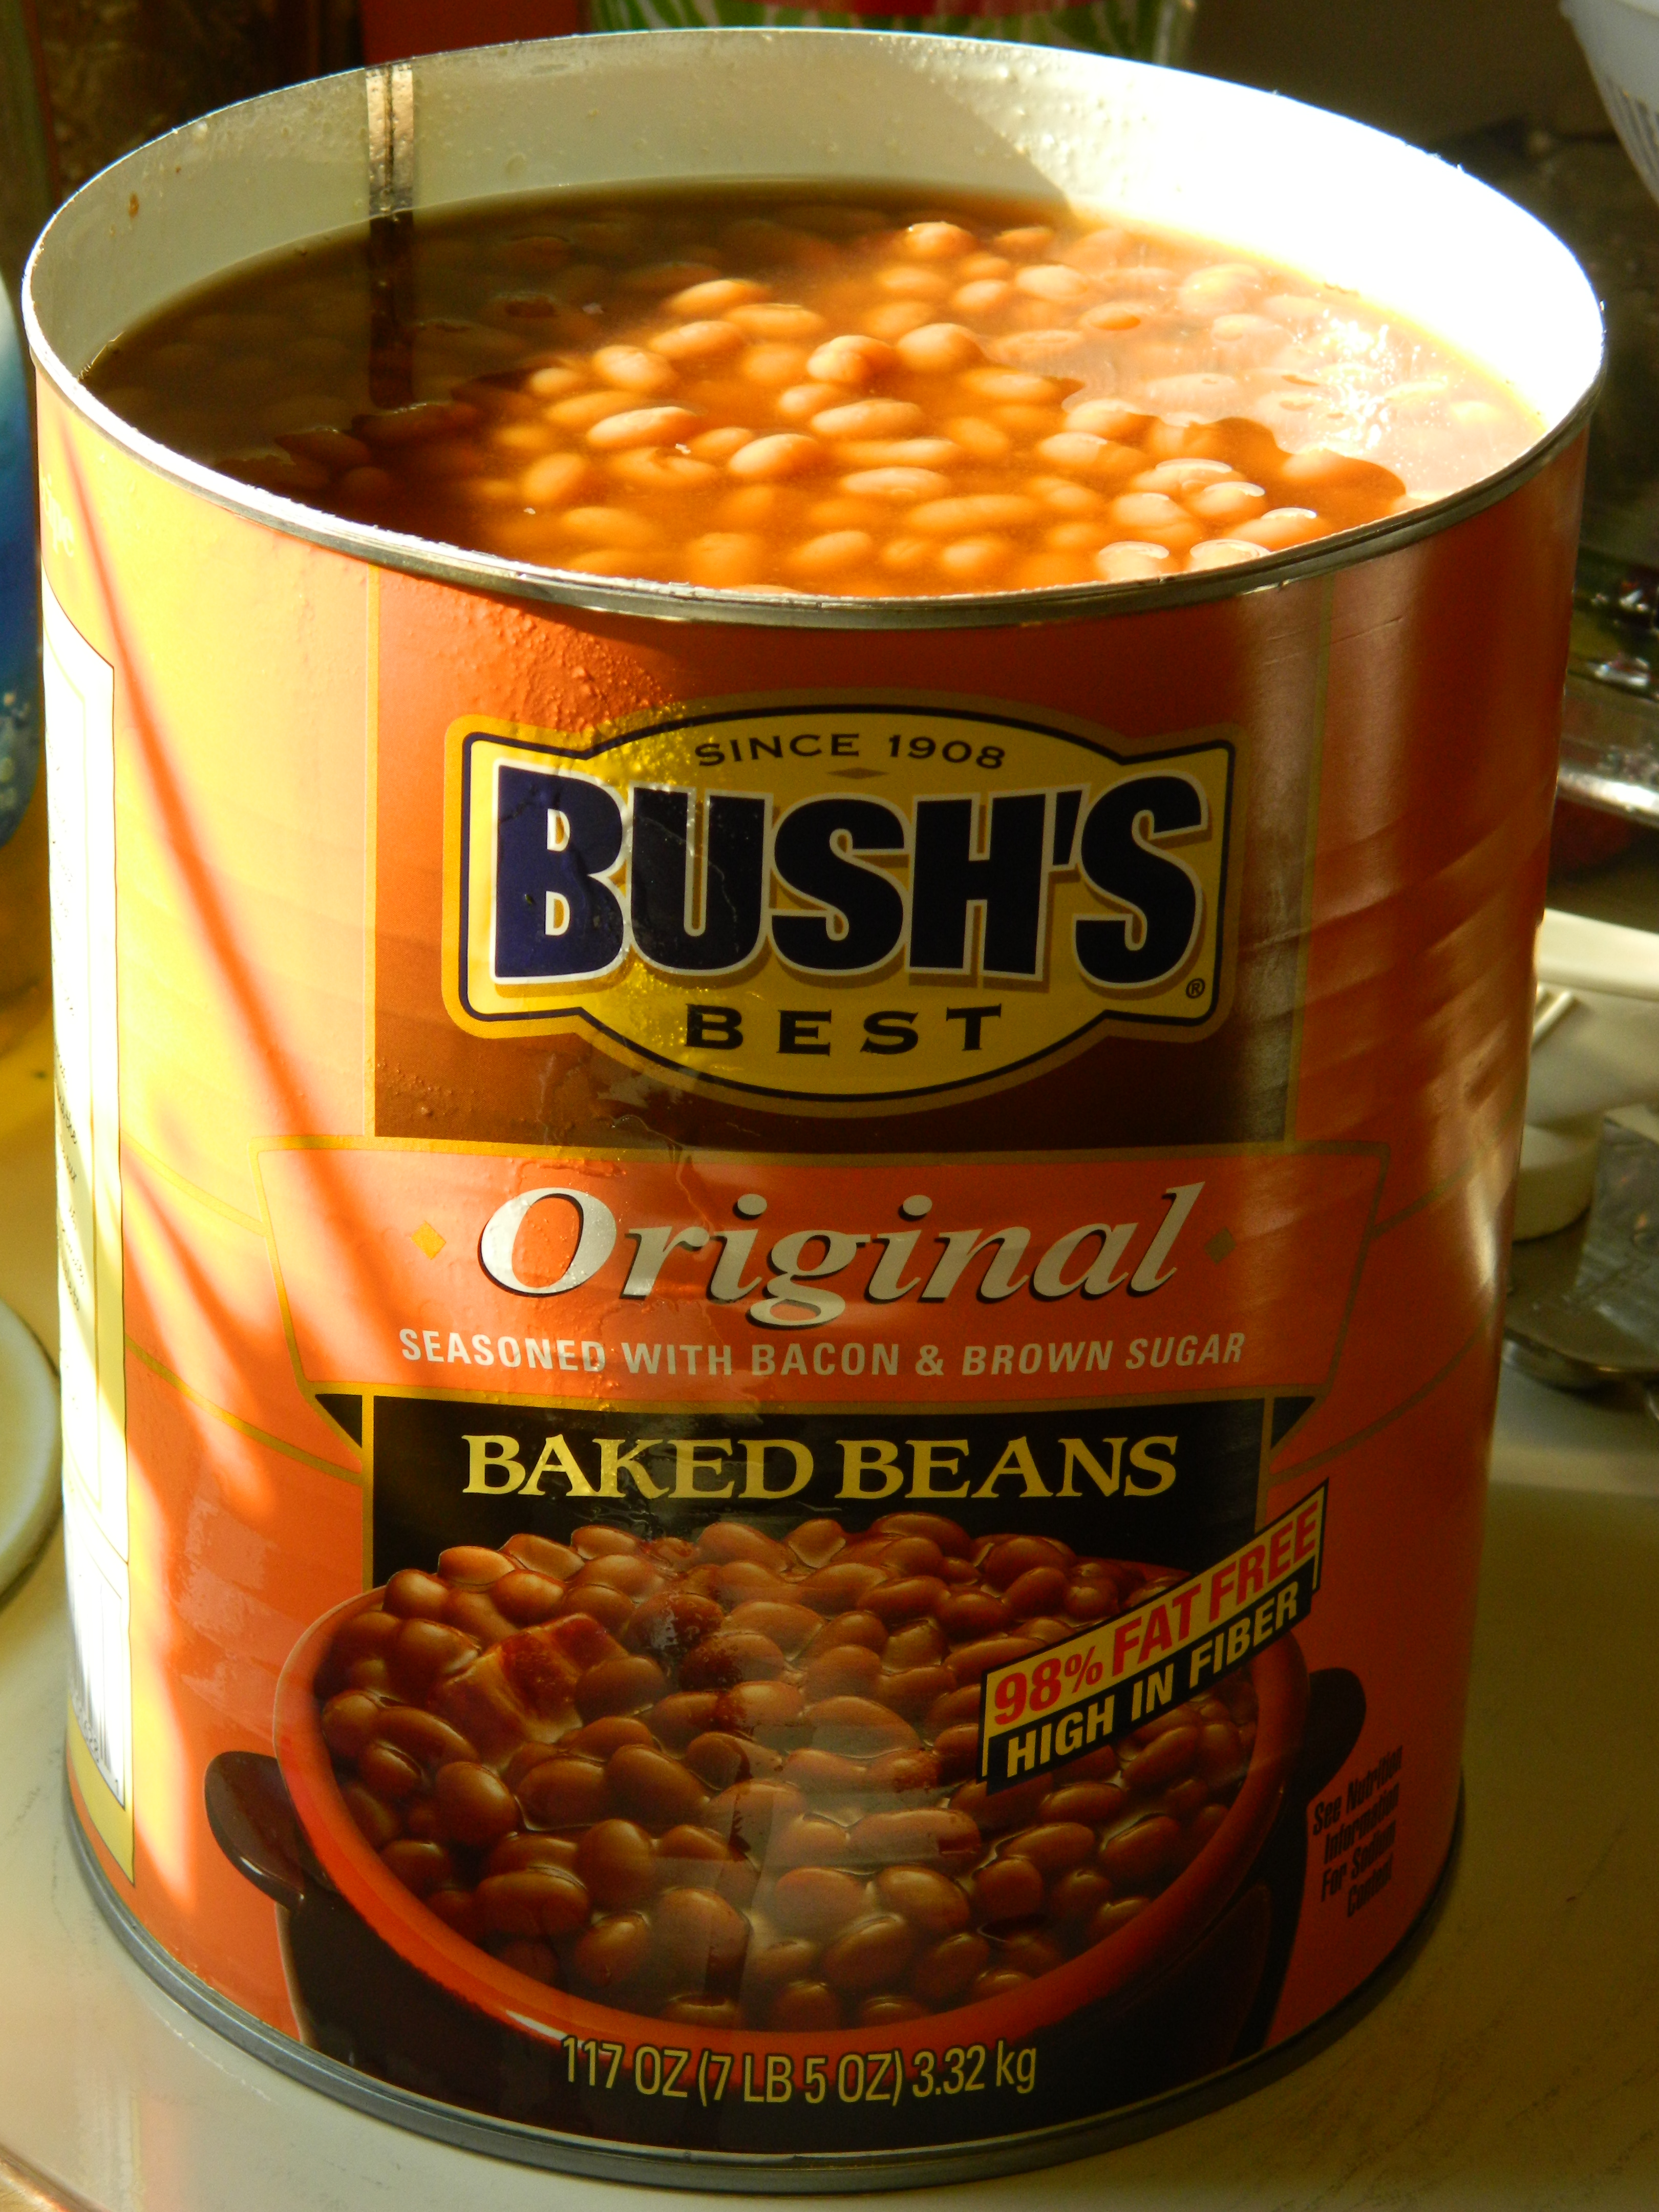 bush's baked beans can sizes